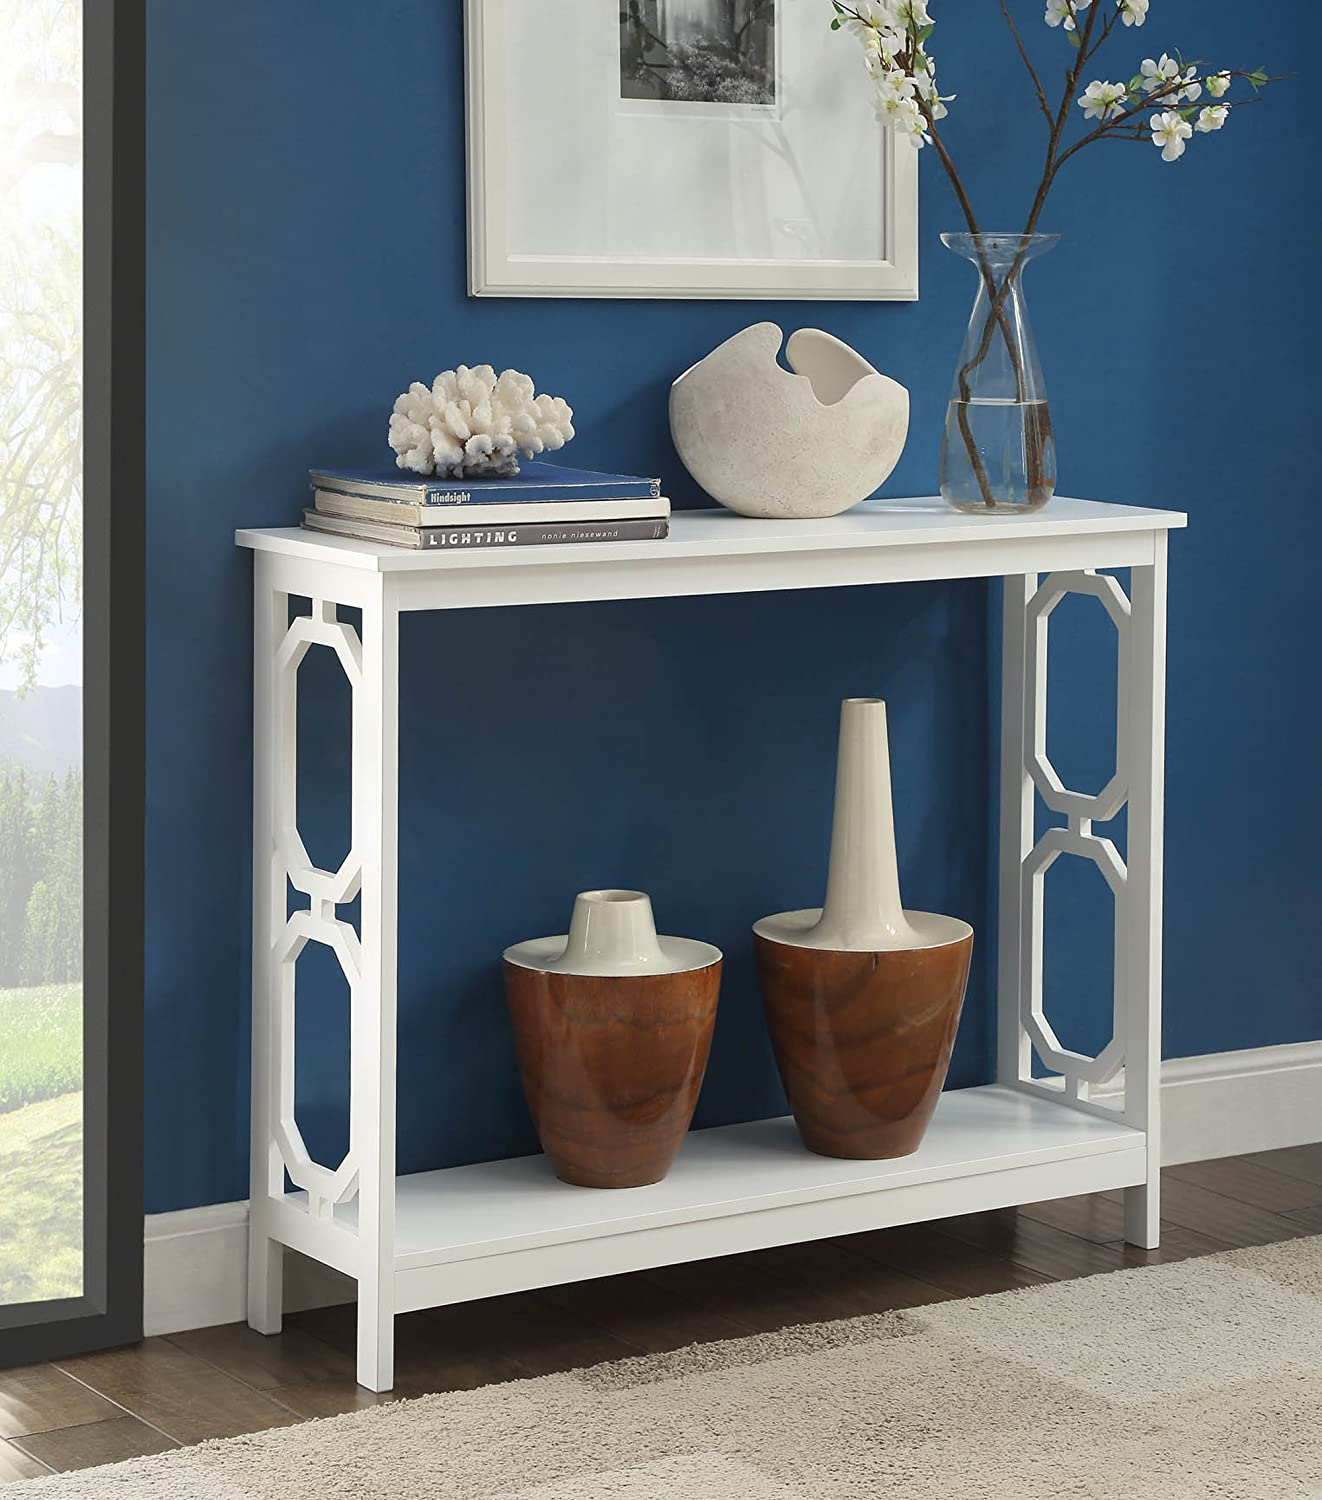 Amazoncom Convenience Concepts Omega Console Table White Kitchen